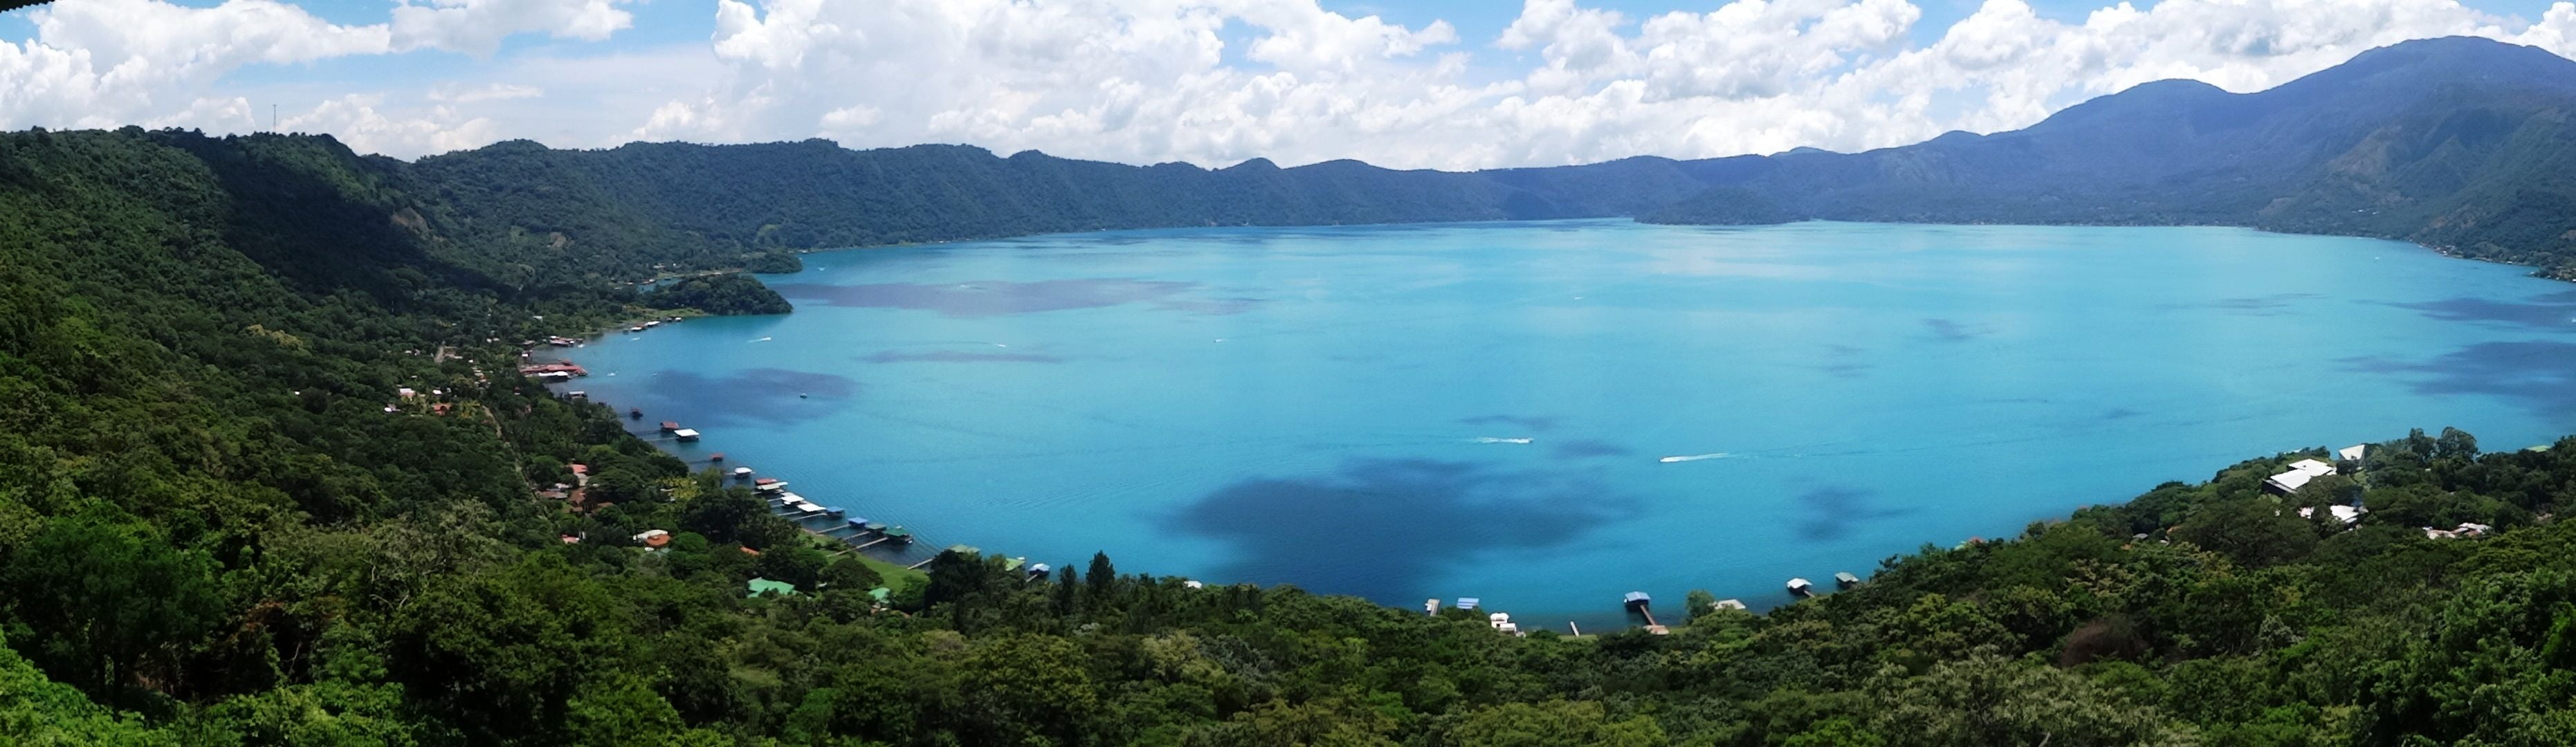 Water Resources in Lake Coatepeque